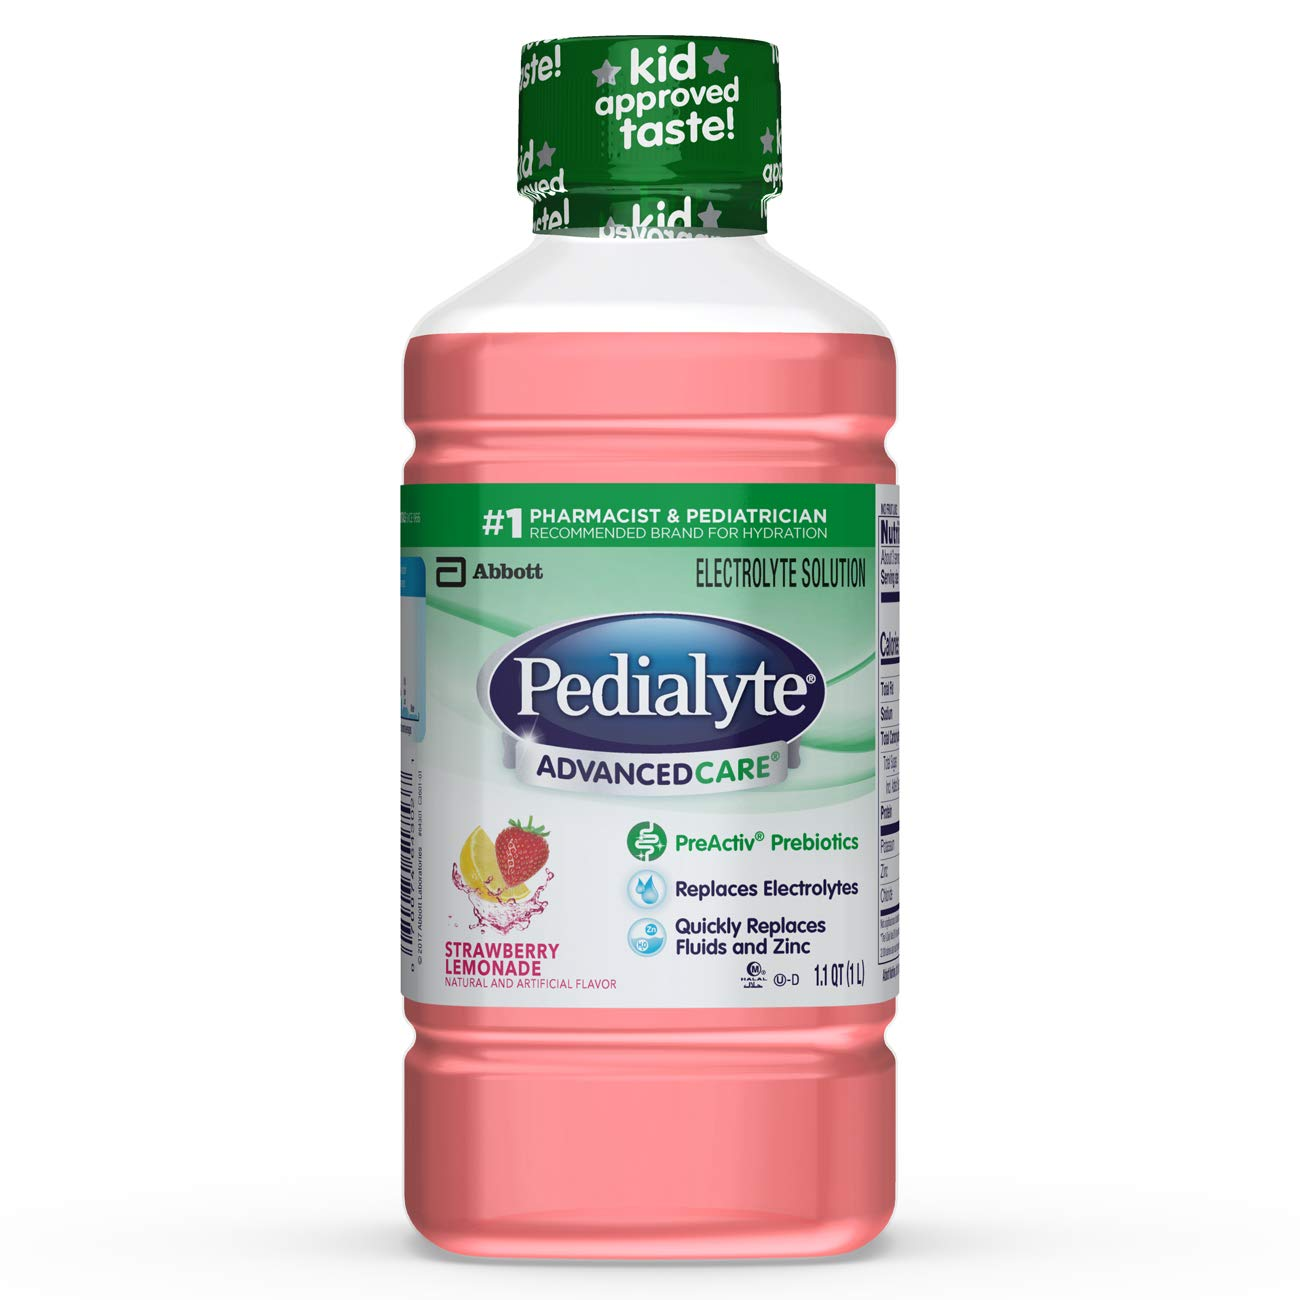 Pedialyte AdvancedCare Electrolyte Solution with PreActiv Prebiotics, Hydration Drink